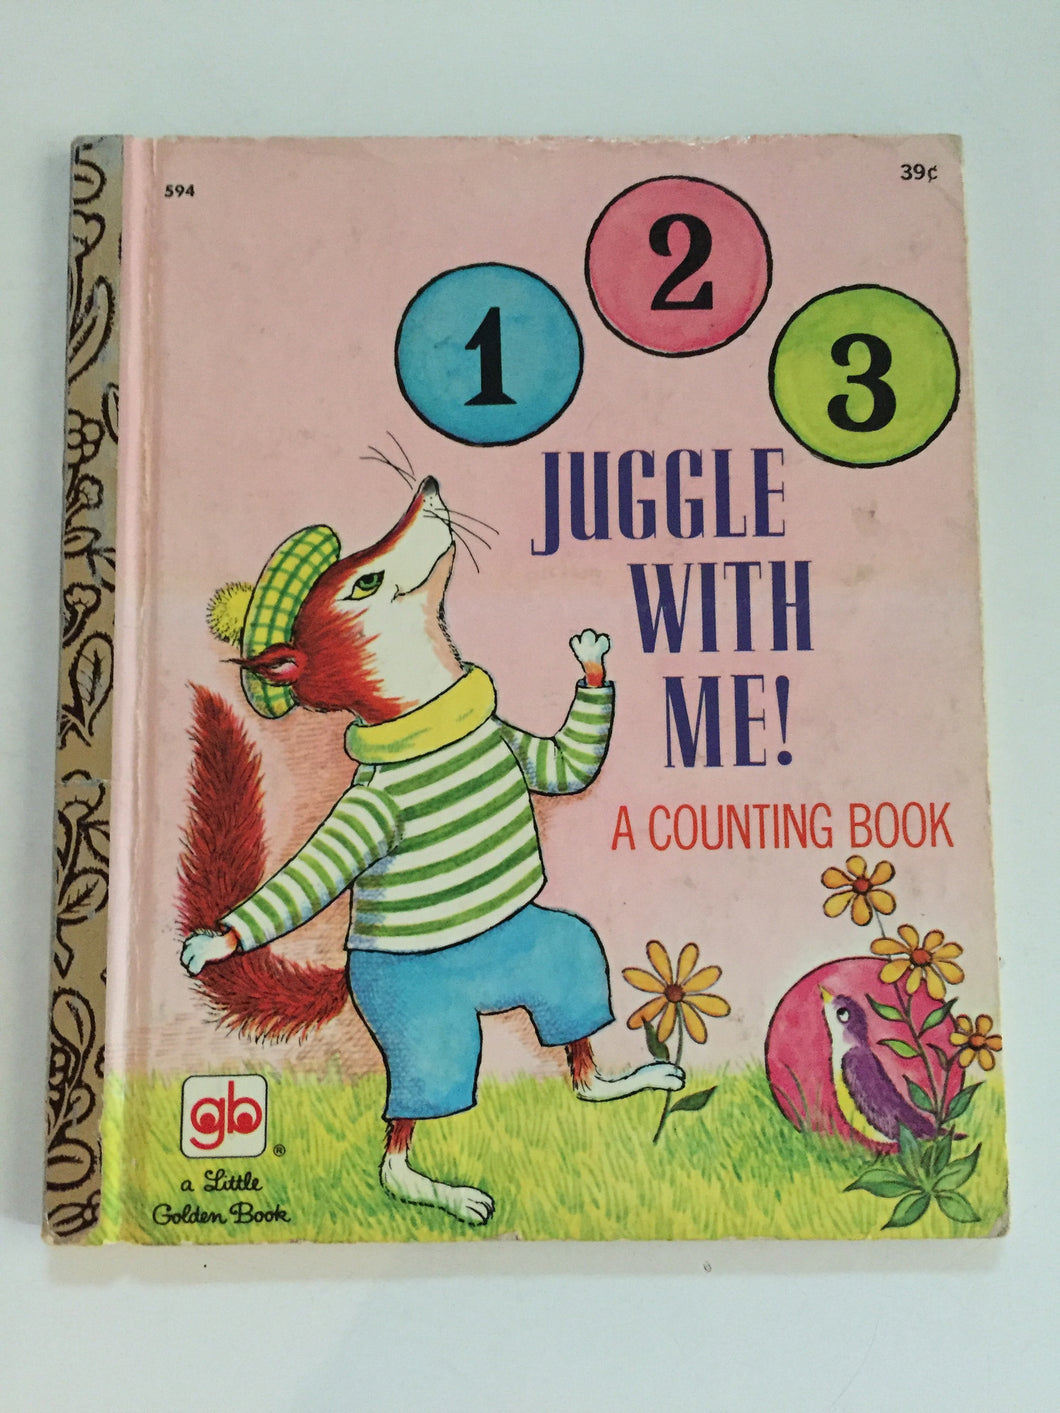 1 2 3 Juggle With Me! A Counting Book - Slick Cat Books